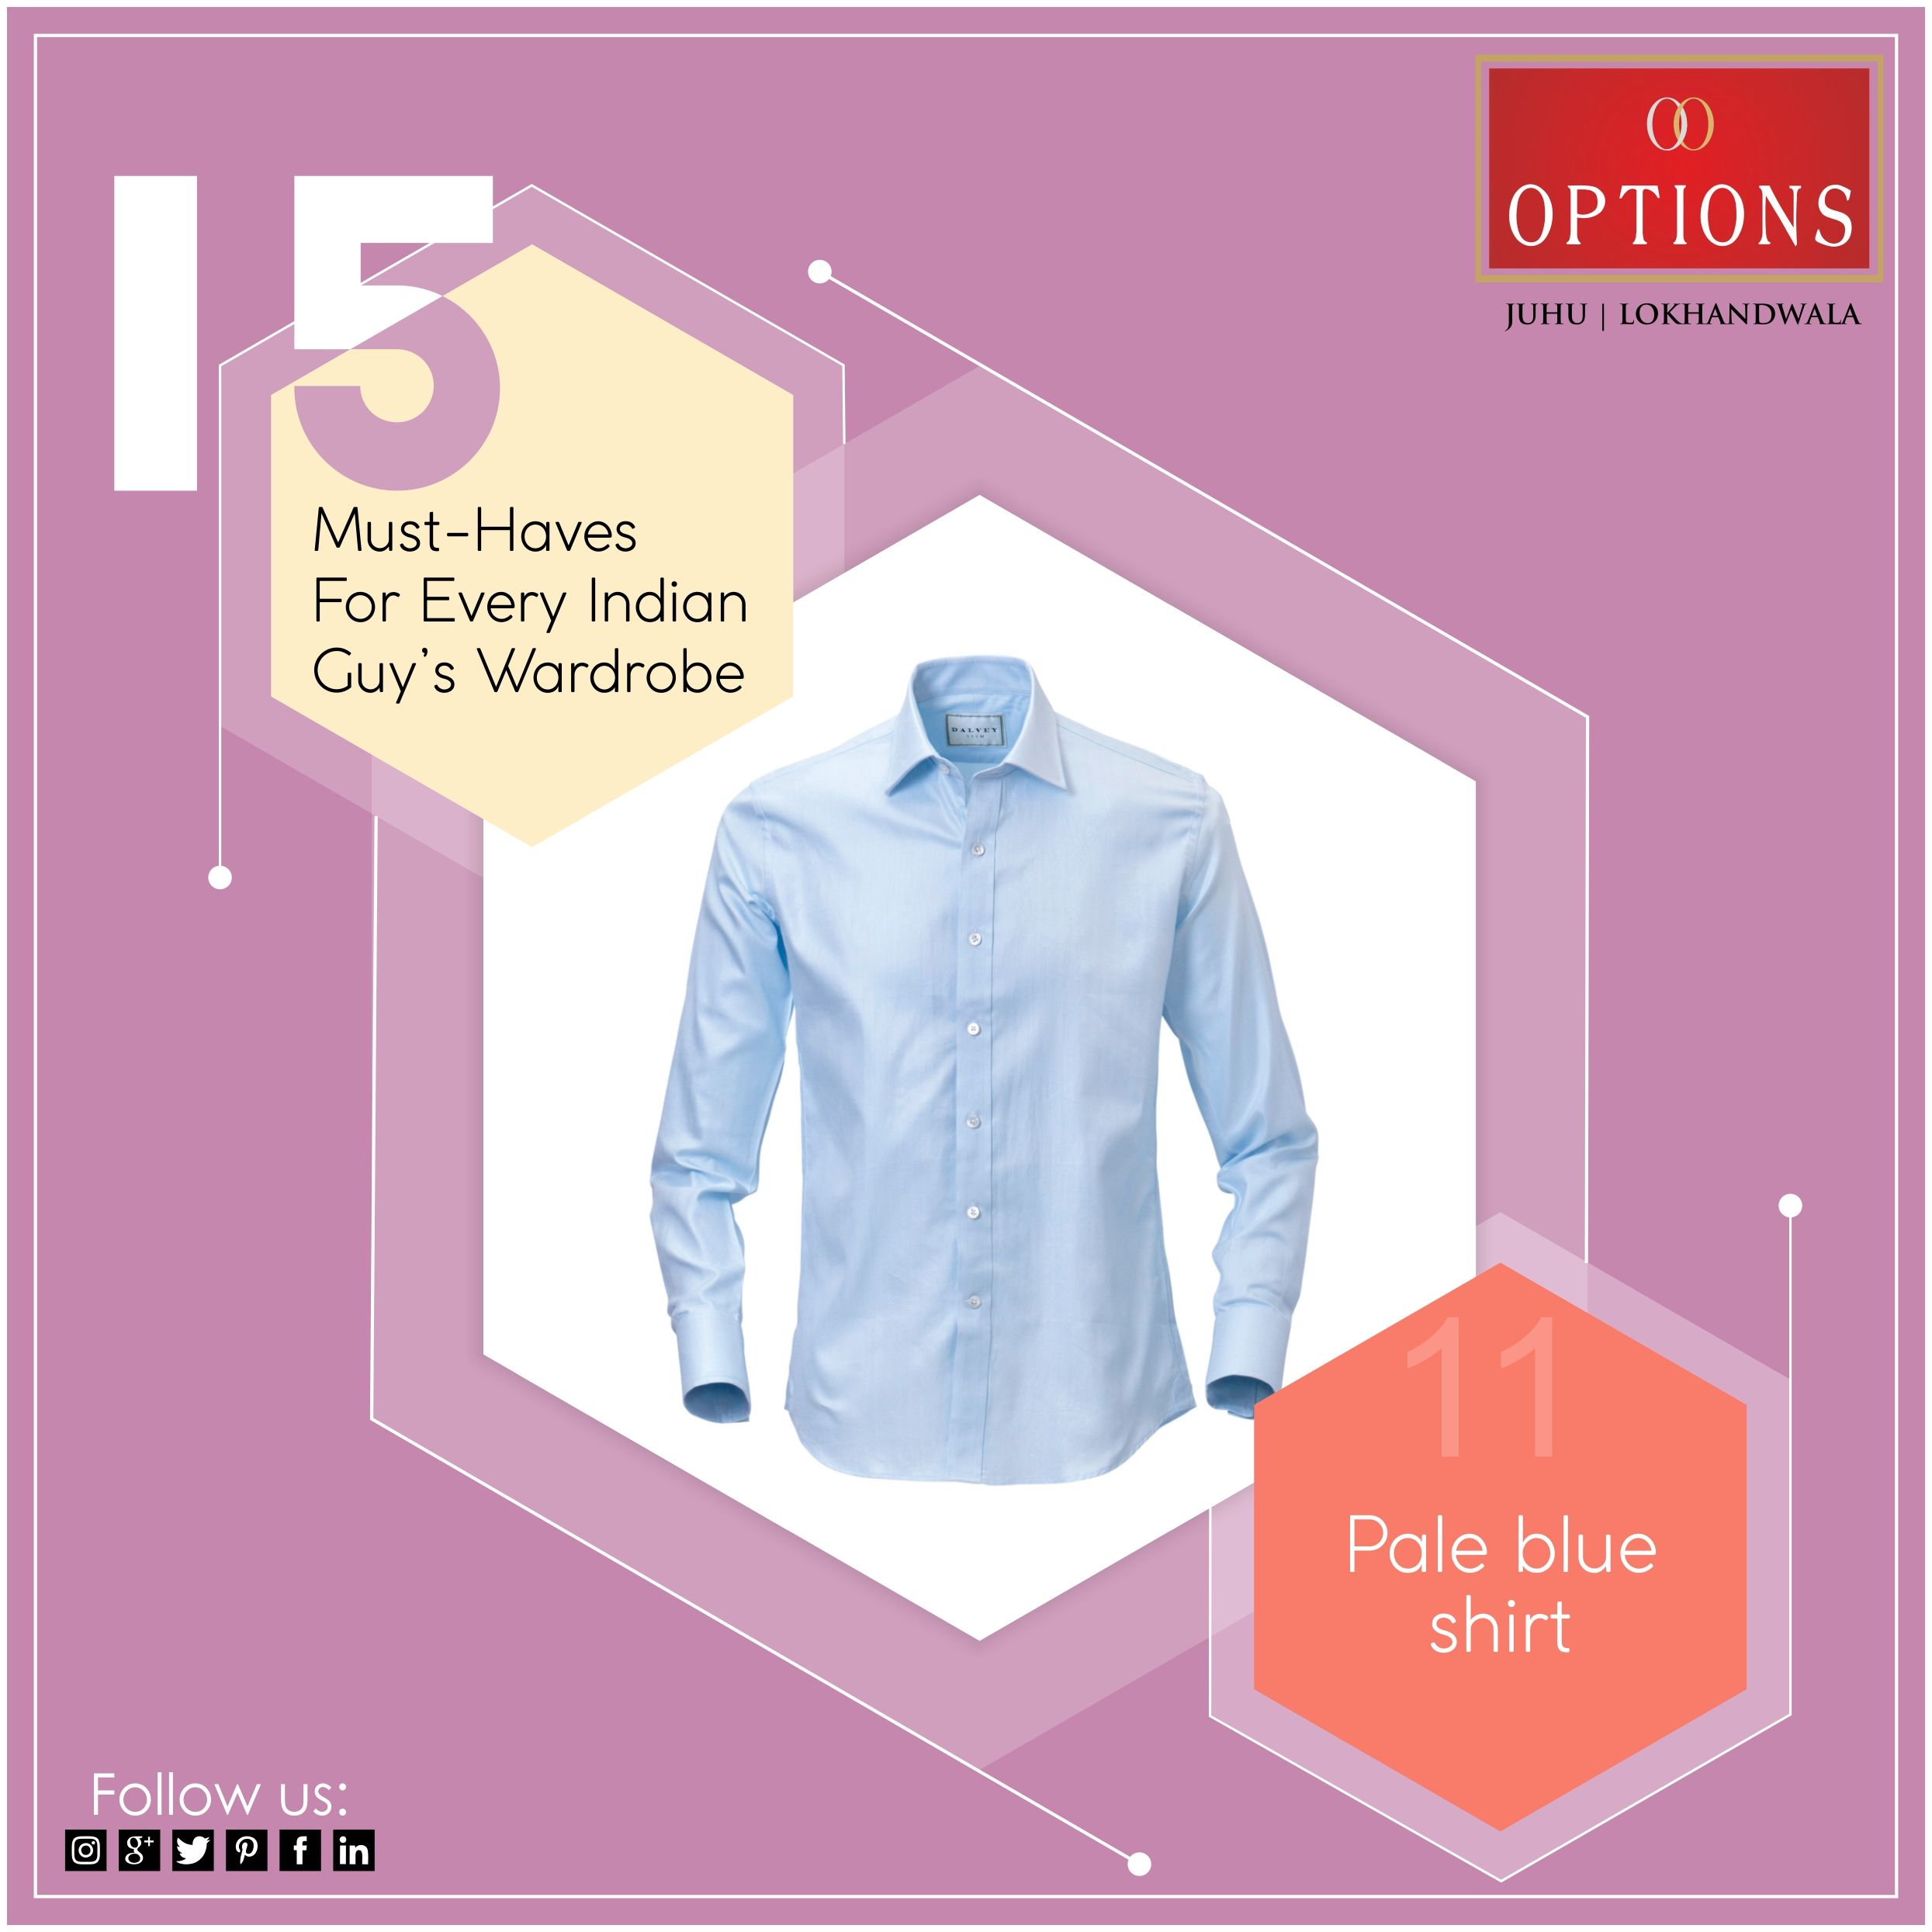 d6b7a7a5fd 15 must have in every guy s wardrobe.  Dailyfashionguide   optionsthefashionmall  juhu  lokhandwala  mumbai